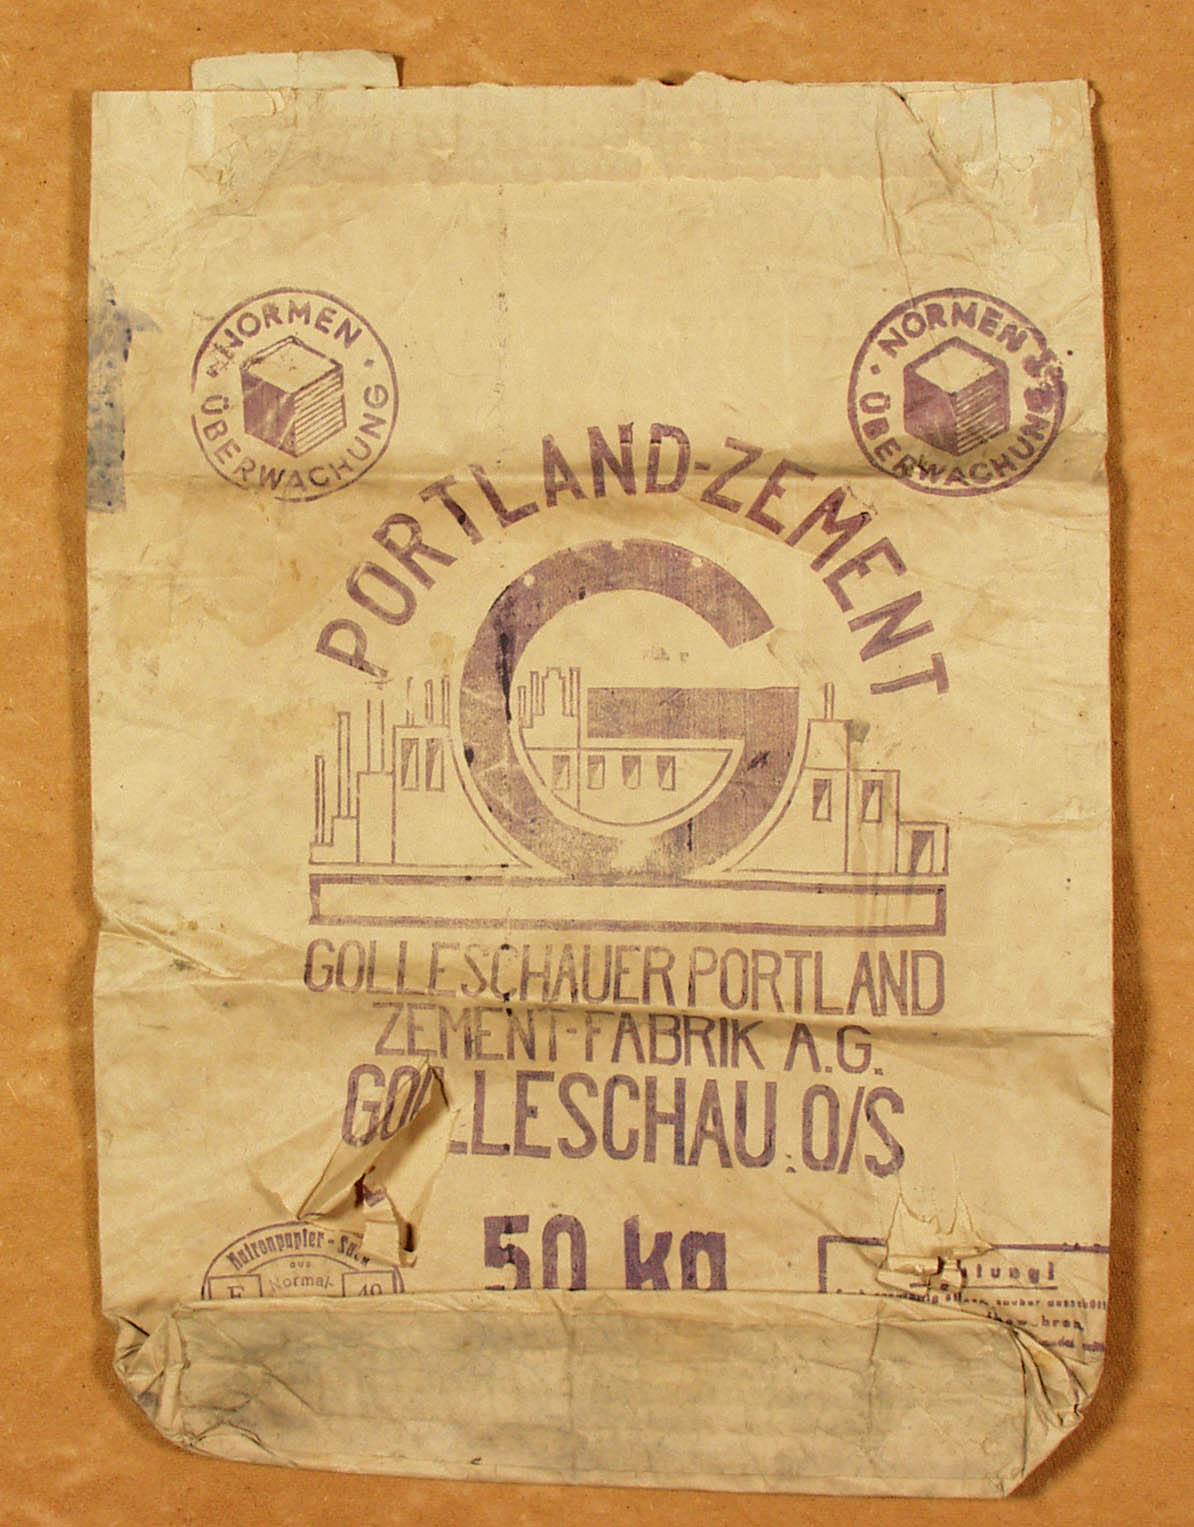 Golleschau cement bag. PMO II 4 640 1